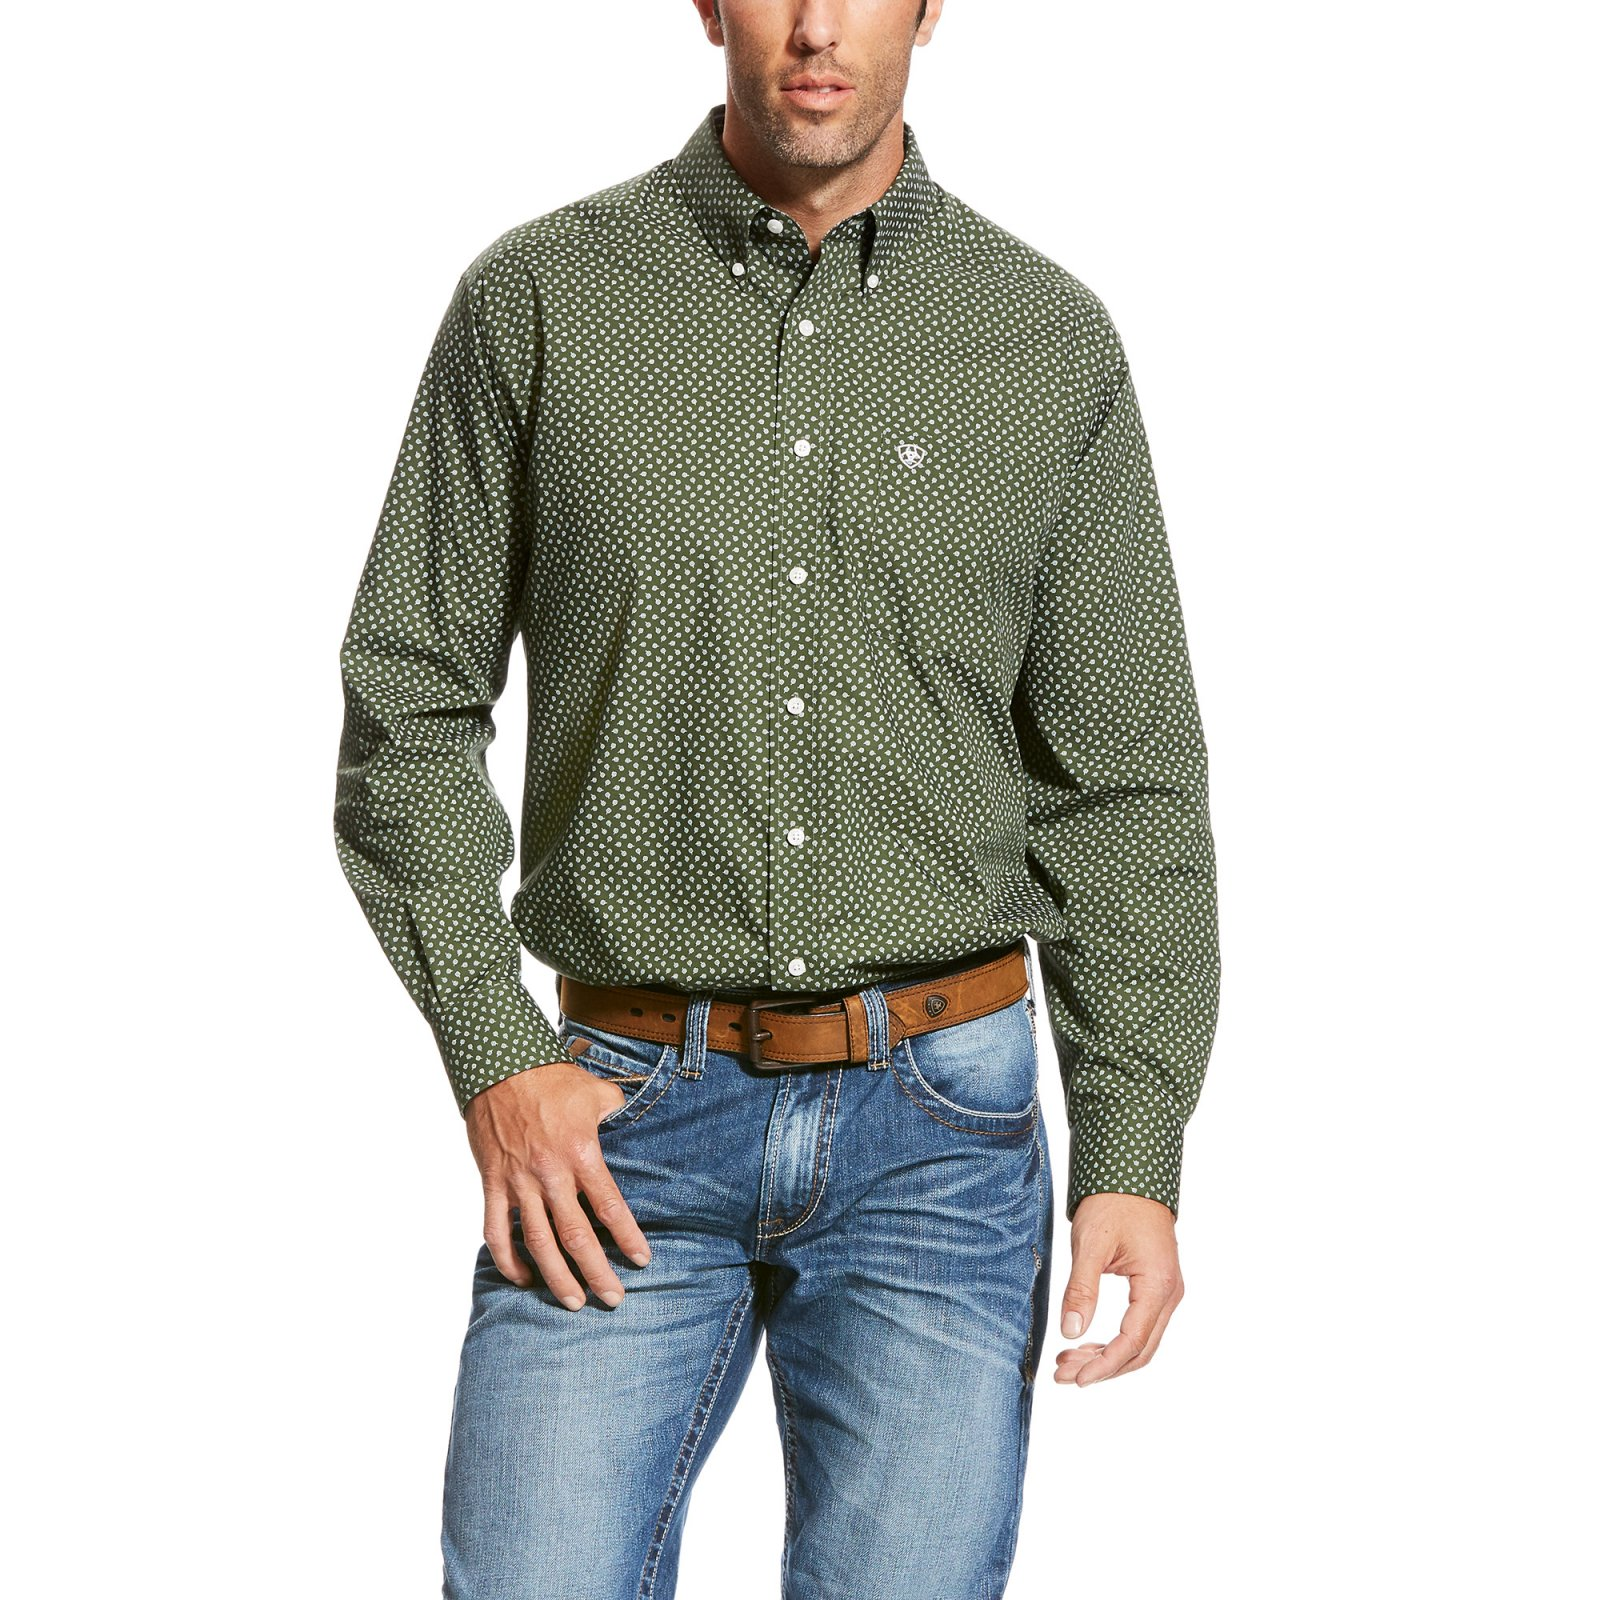 Men's Wrinkle Free Urwin Long Sleeve Printed Woven from Ariat